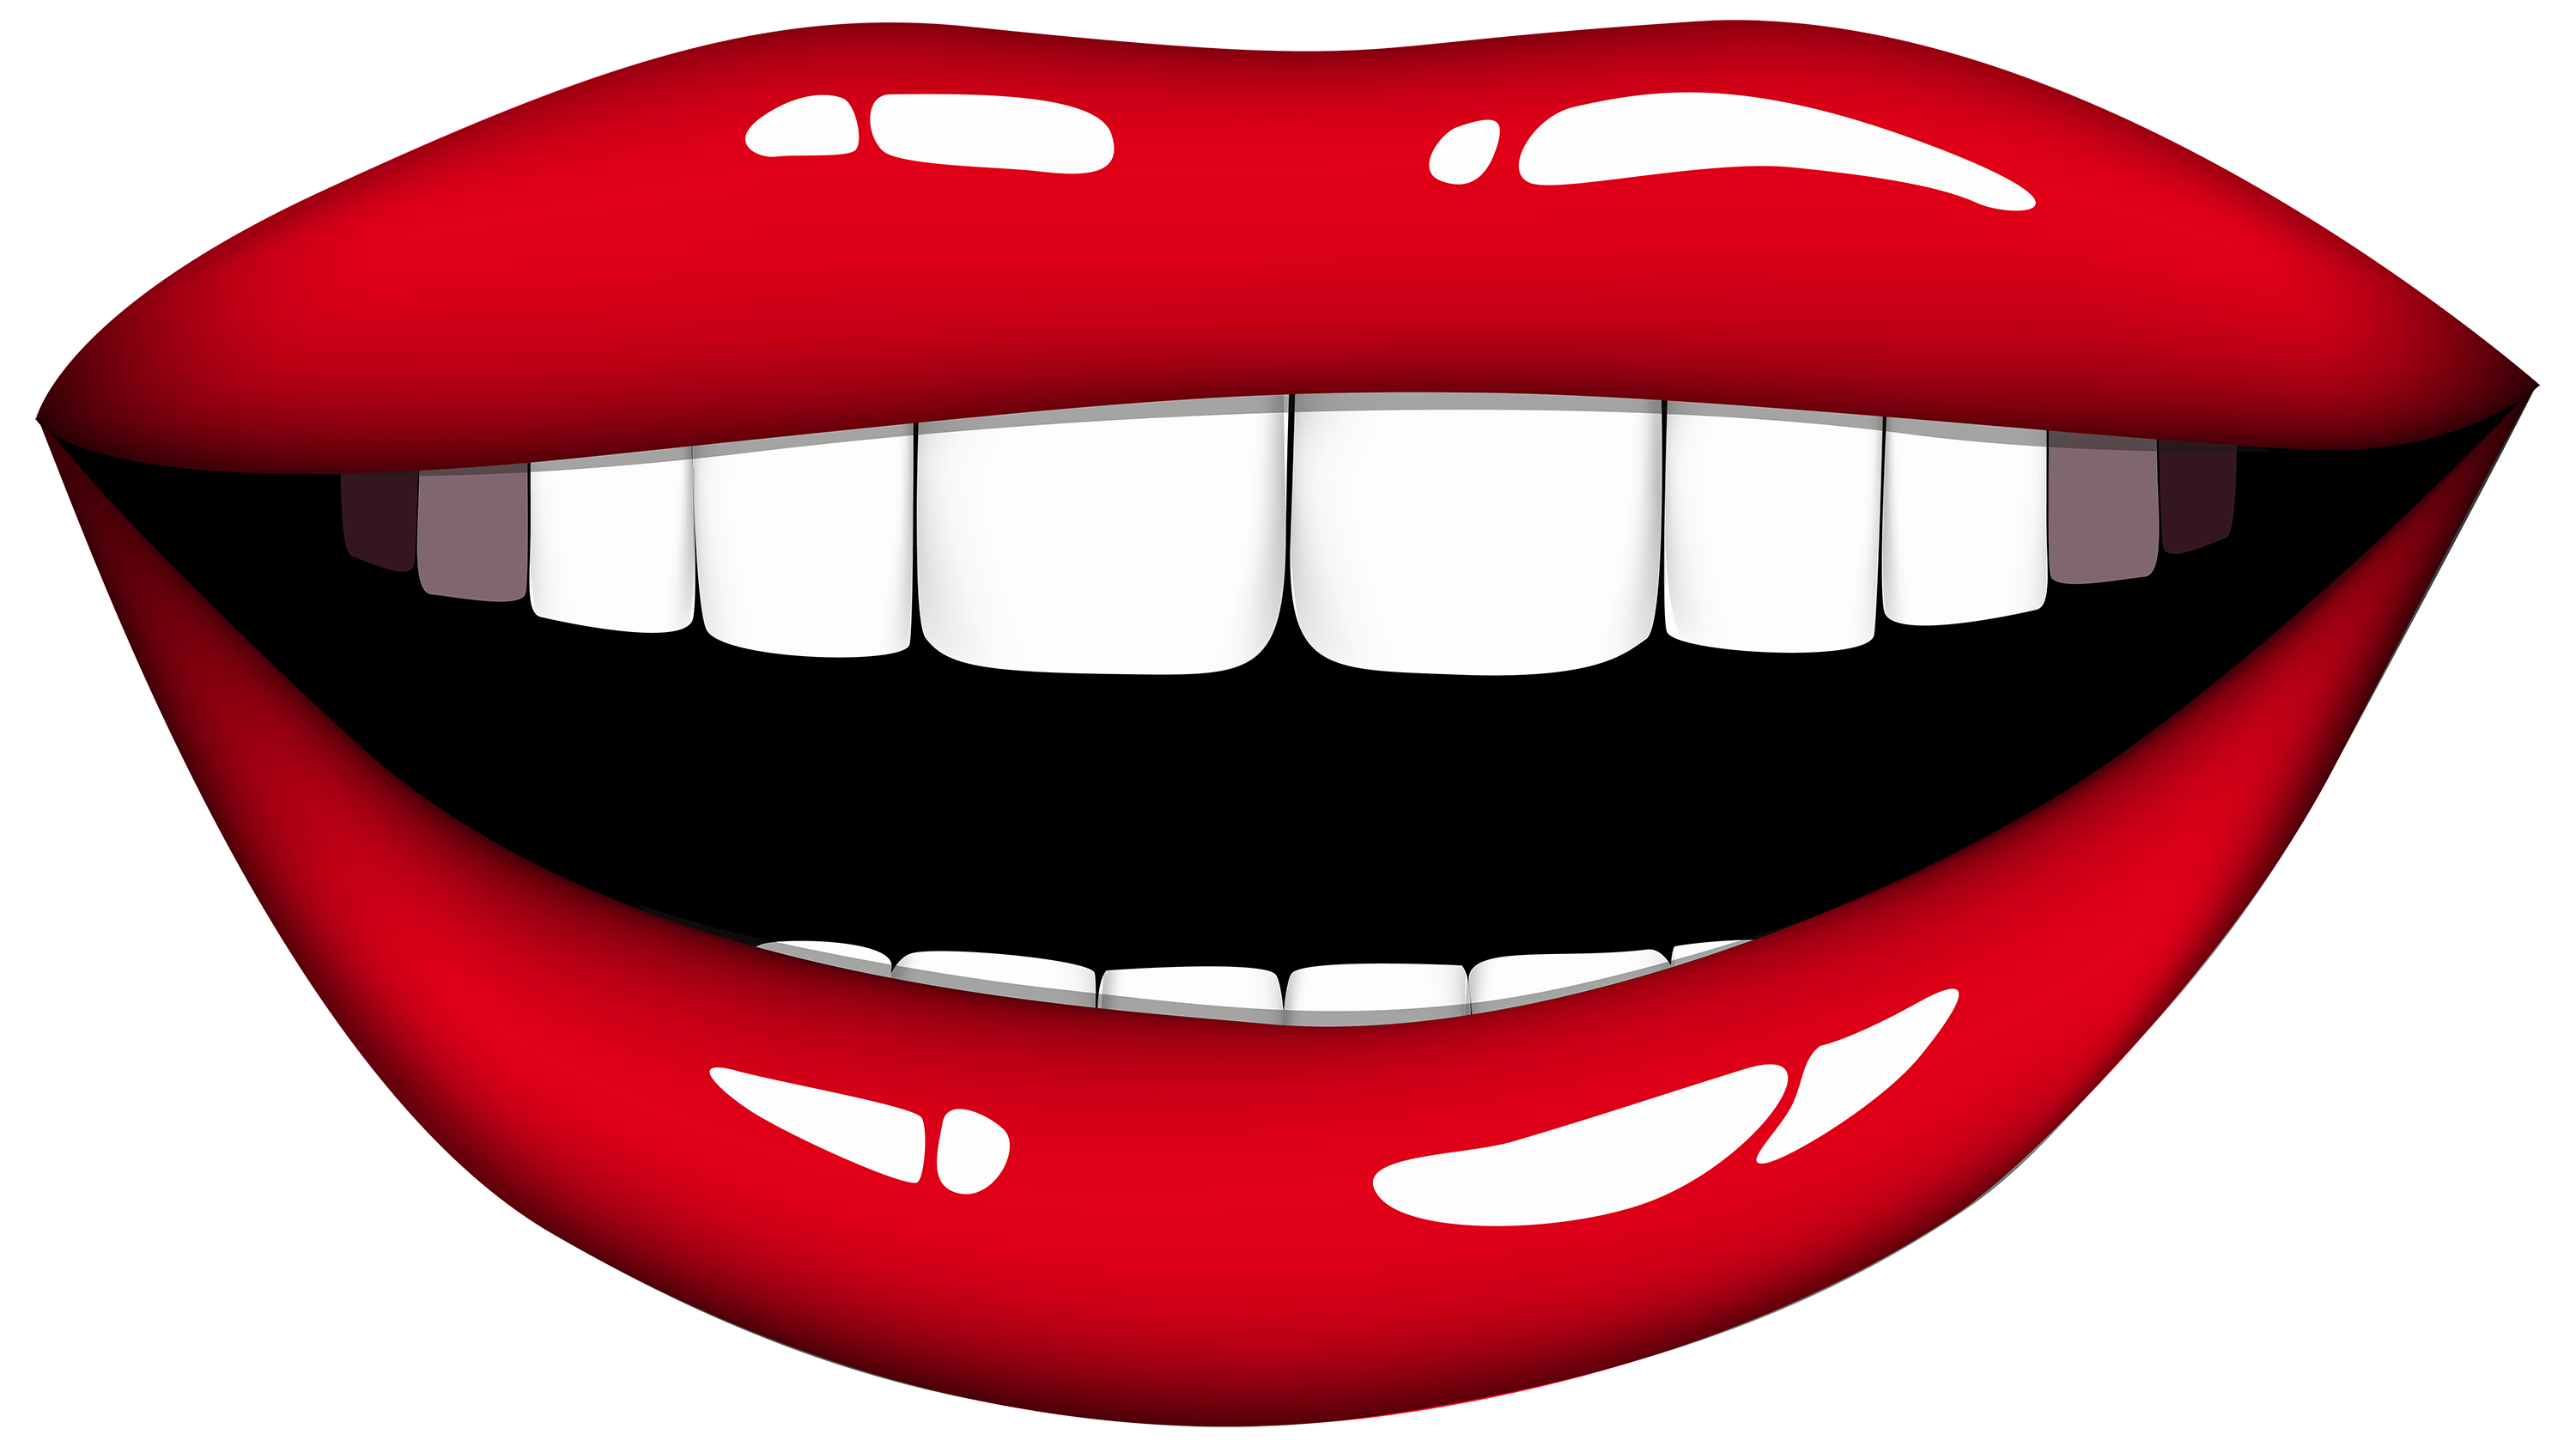 Smile Mouth Clipart Black And White Free-Smile mouth clipart black and white free clipart image-16